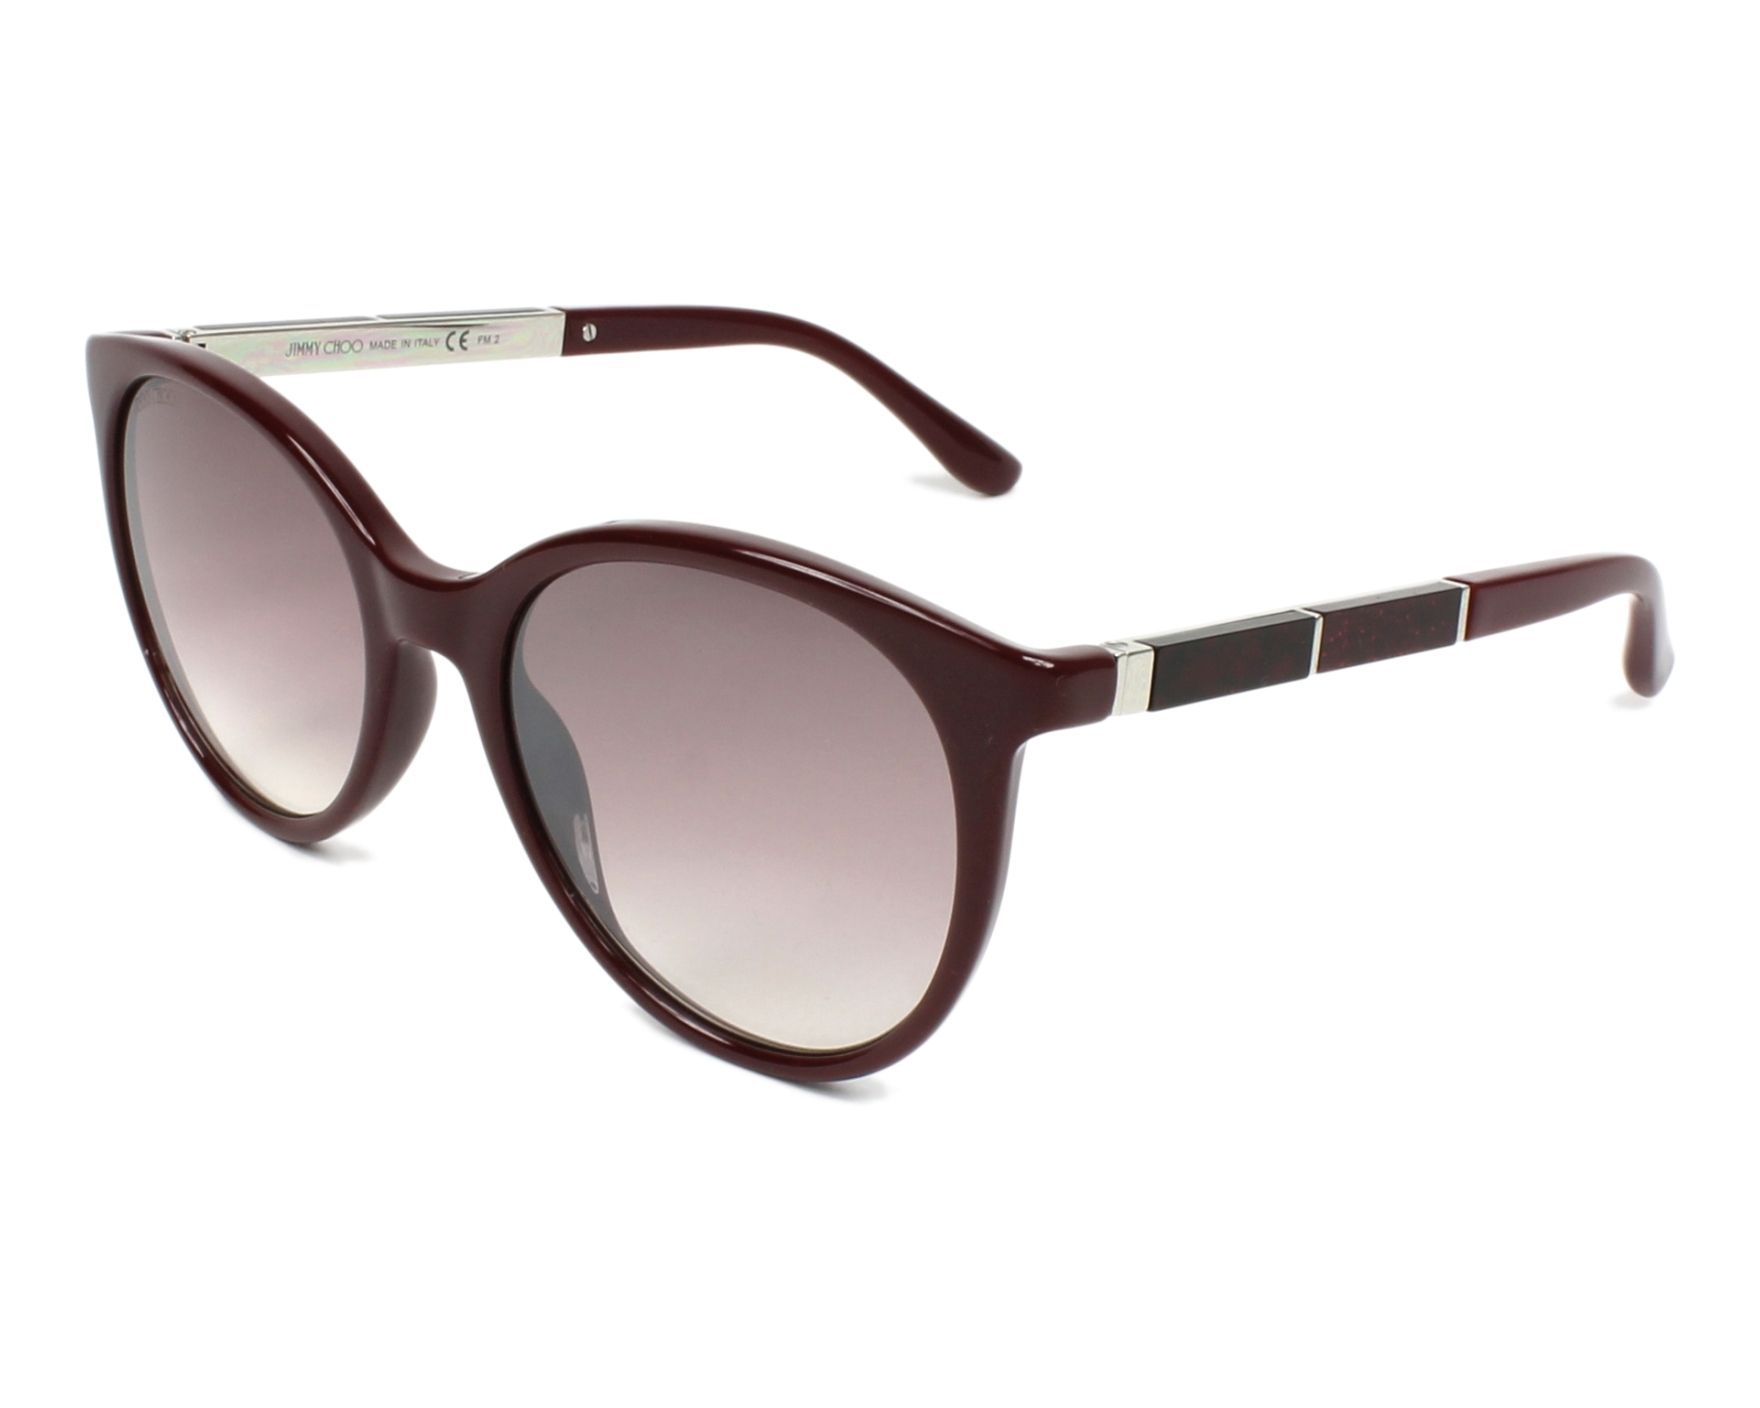 4c17dffeee68 Sunglasses Jimmy Choo ERIE-S LHF NQ 54-20 Bordeaux Red profile view